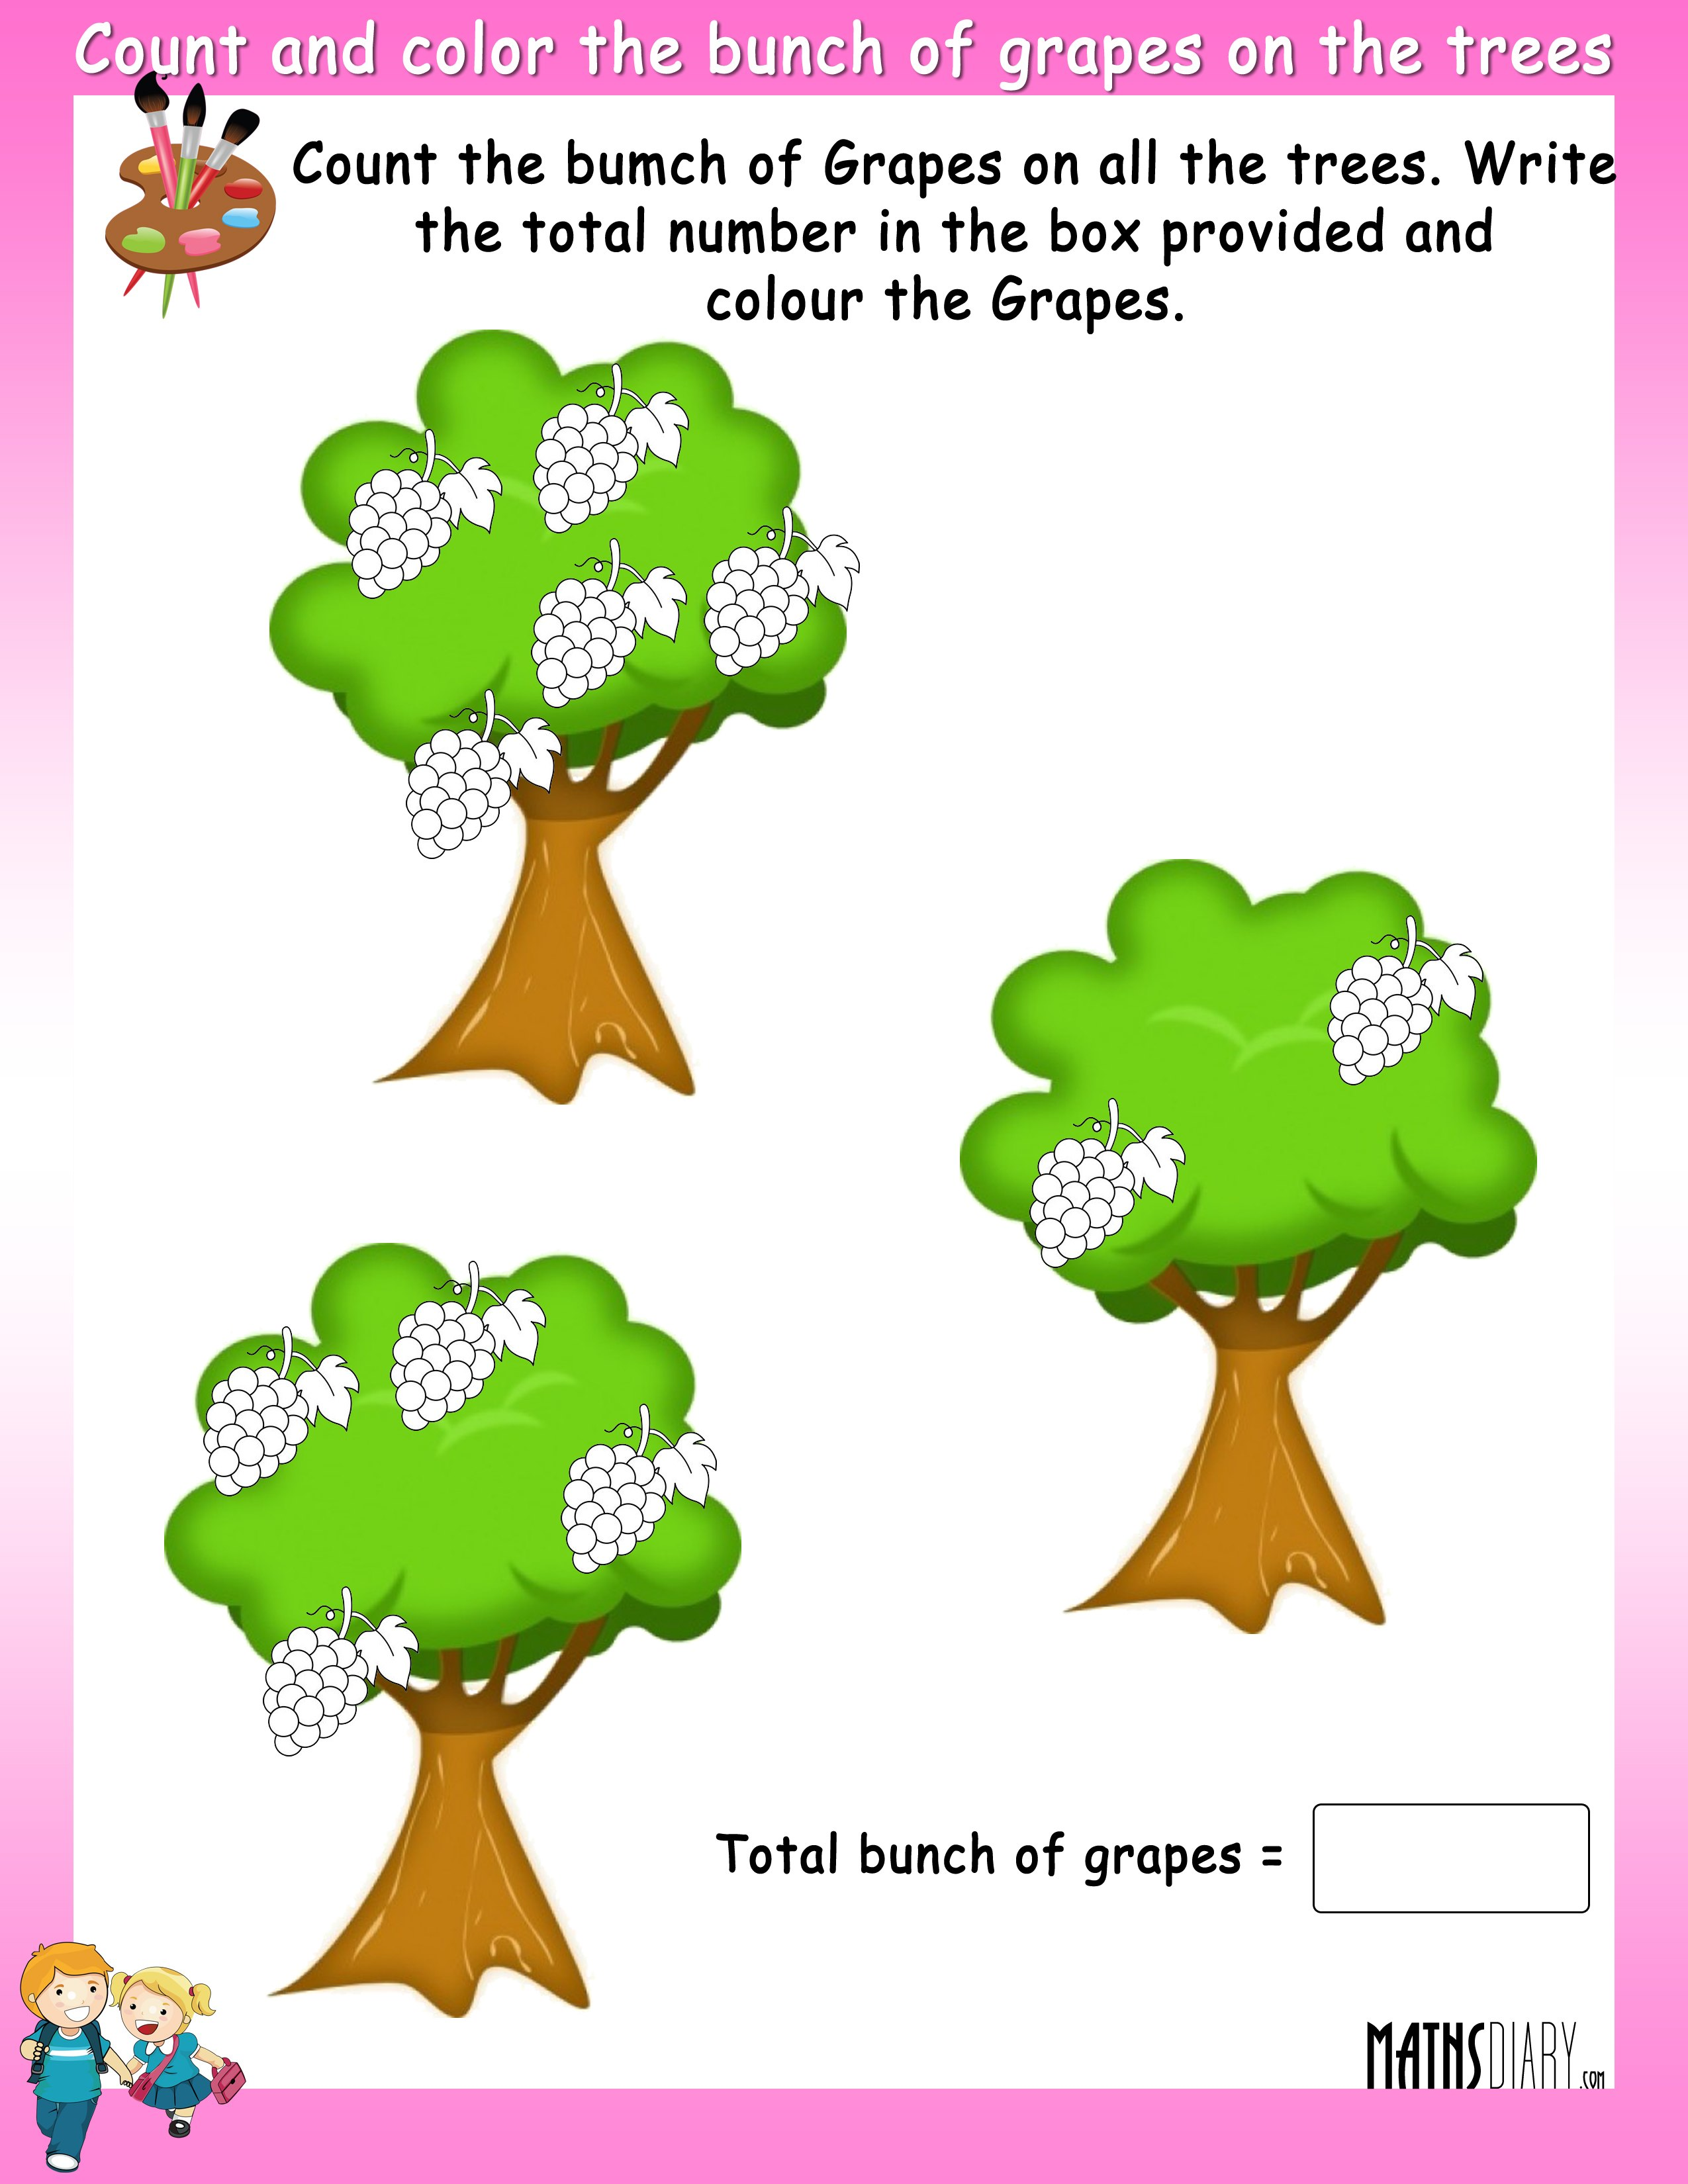 Count and color the fruits on trees - MathsDiary.com